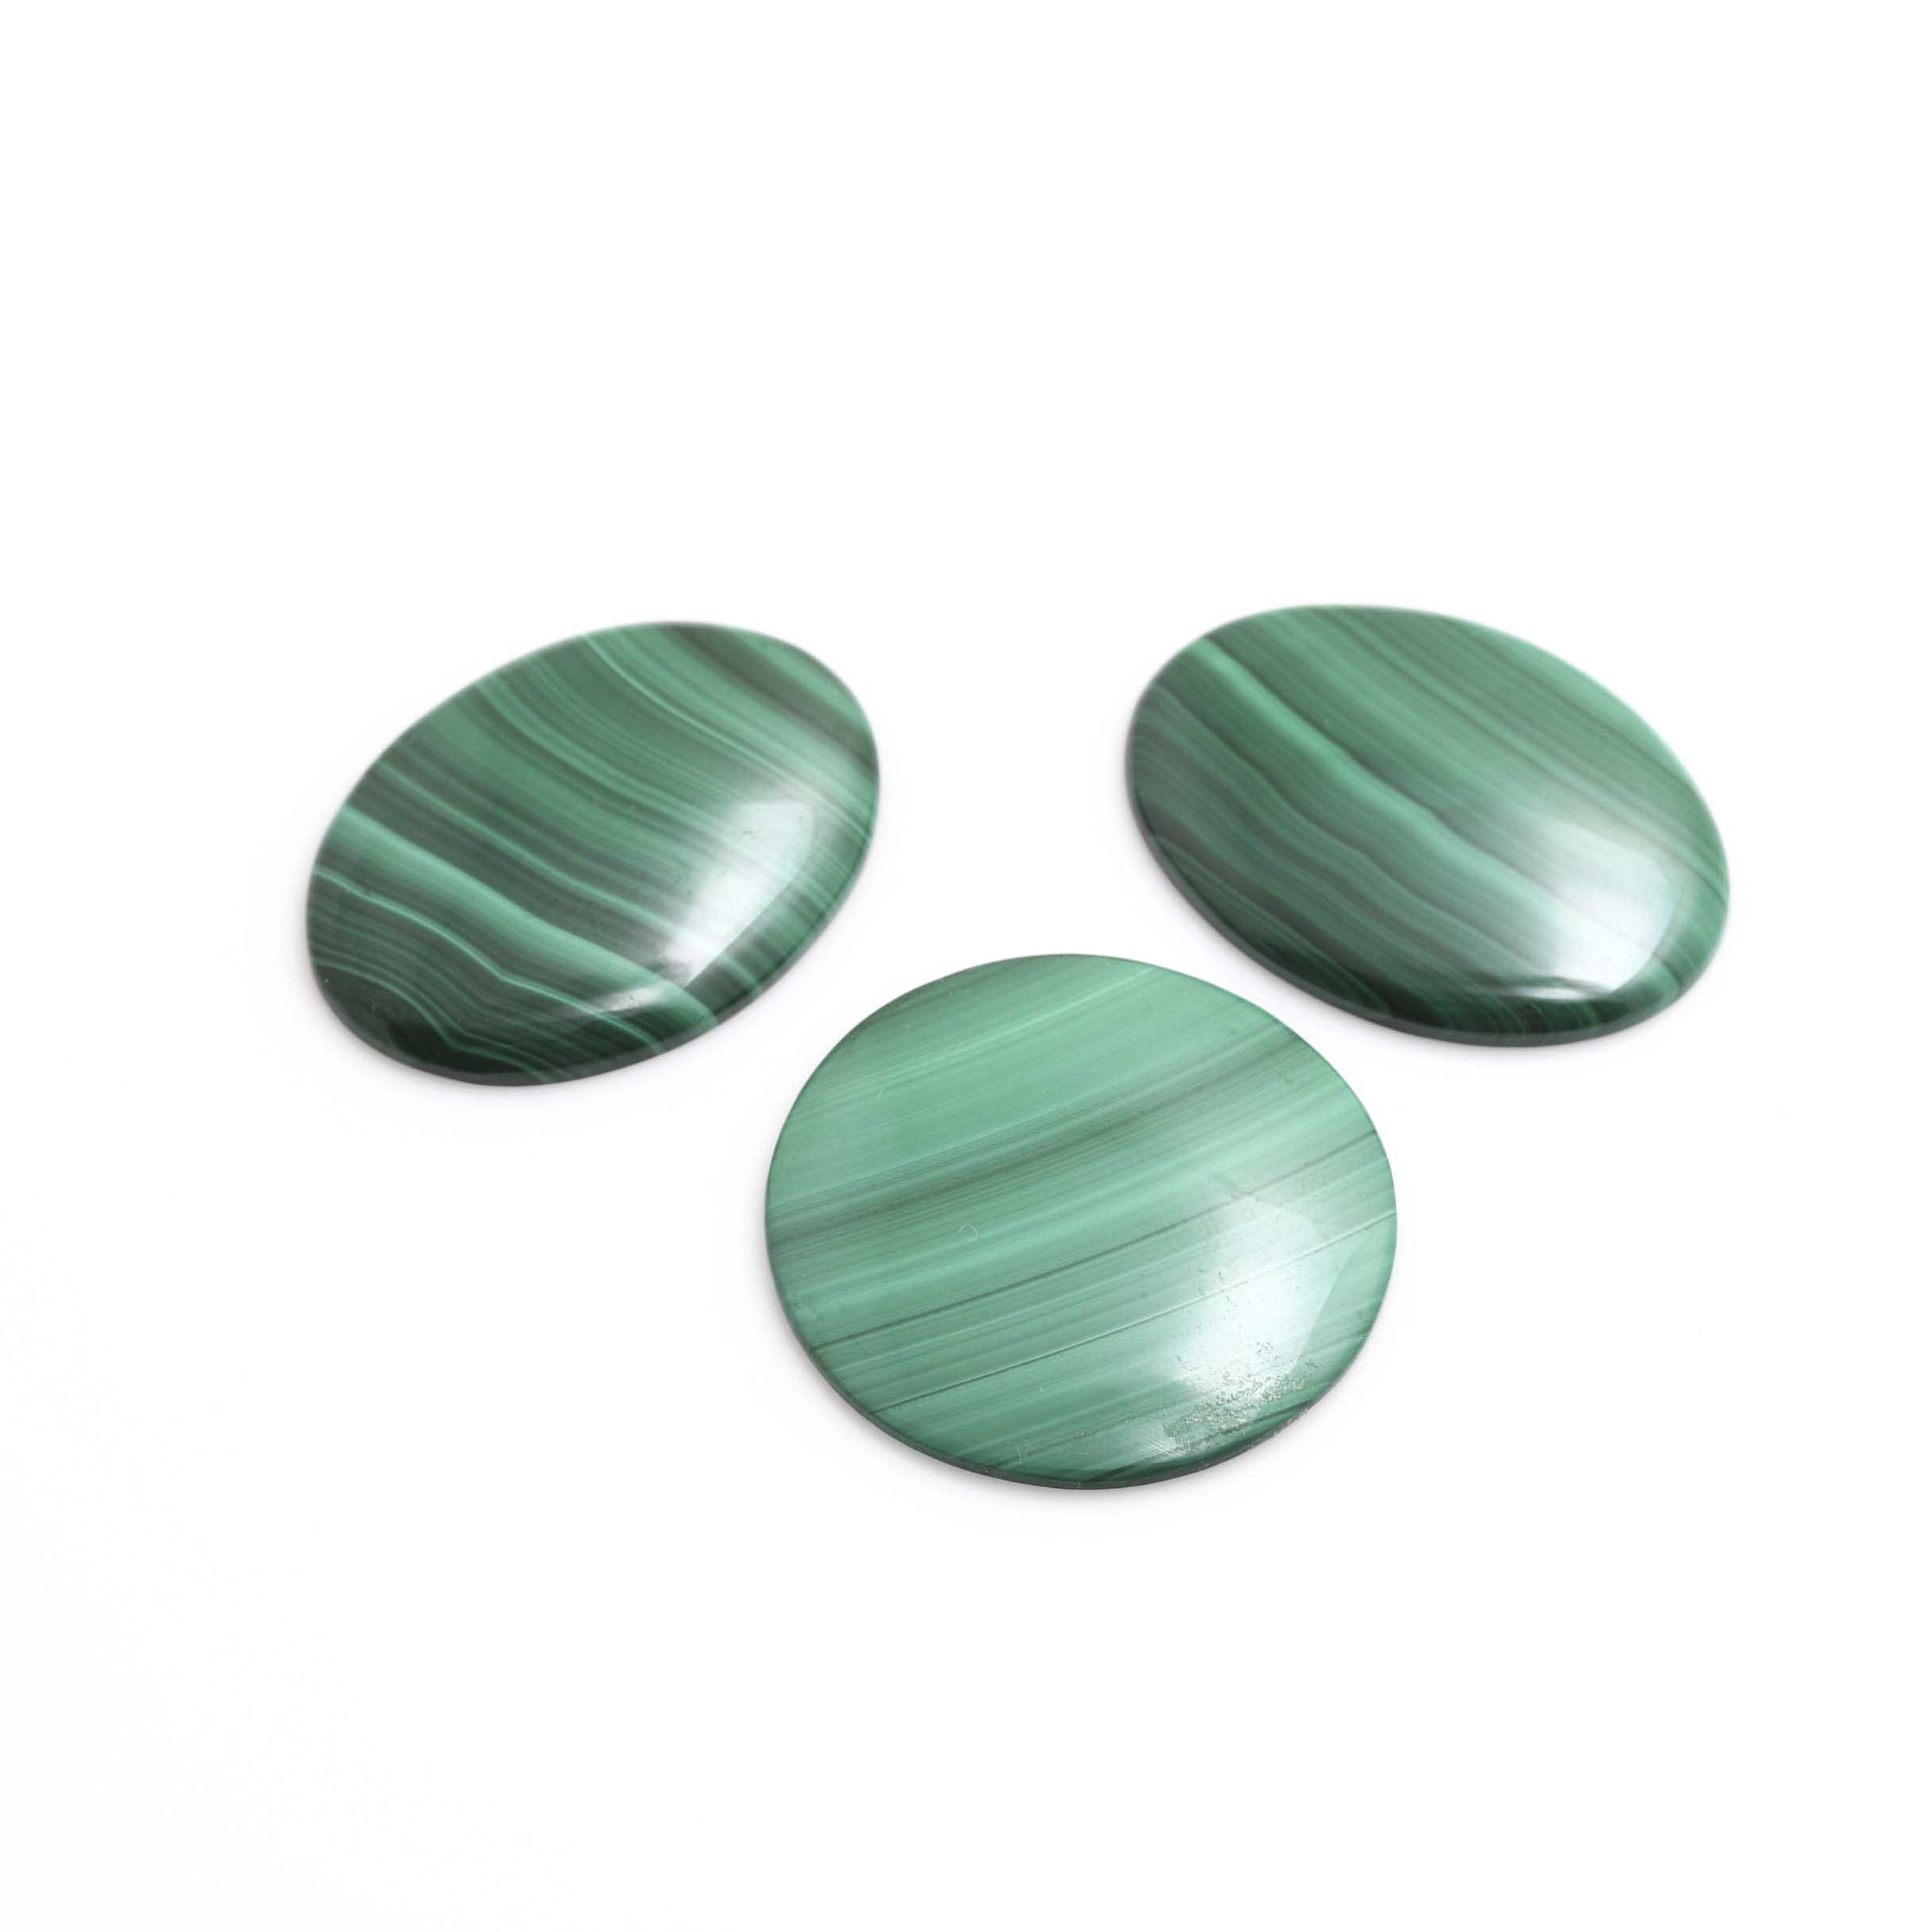 Loose Oval and Round Malachite Gemstones